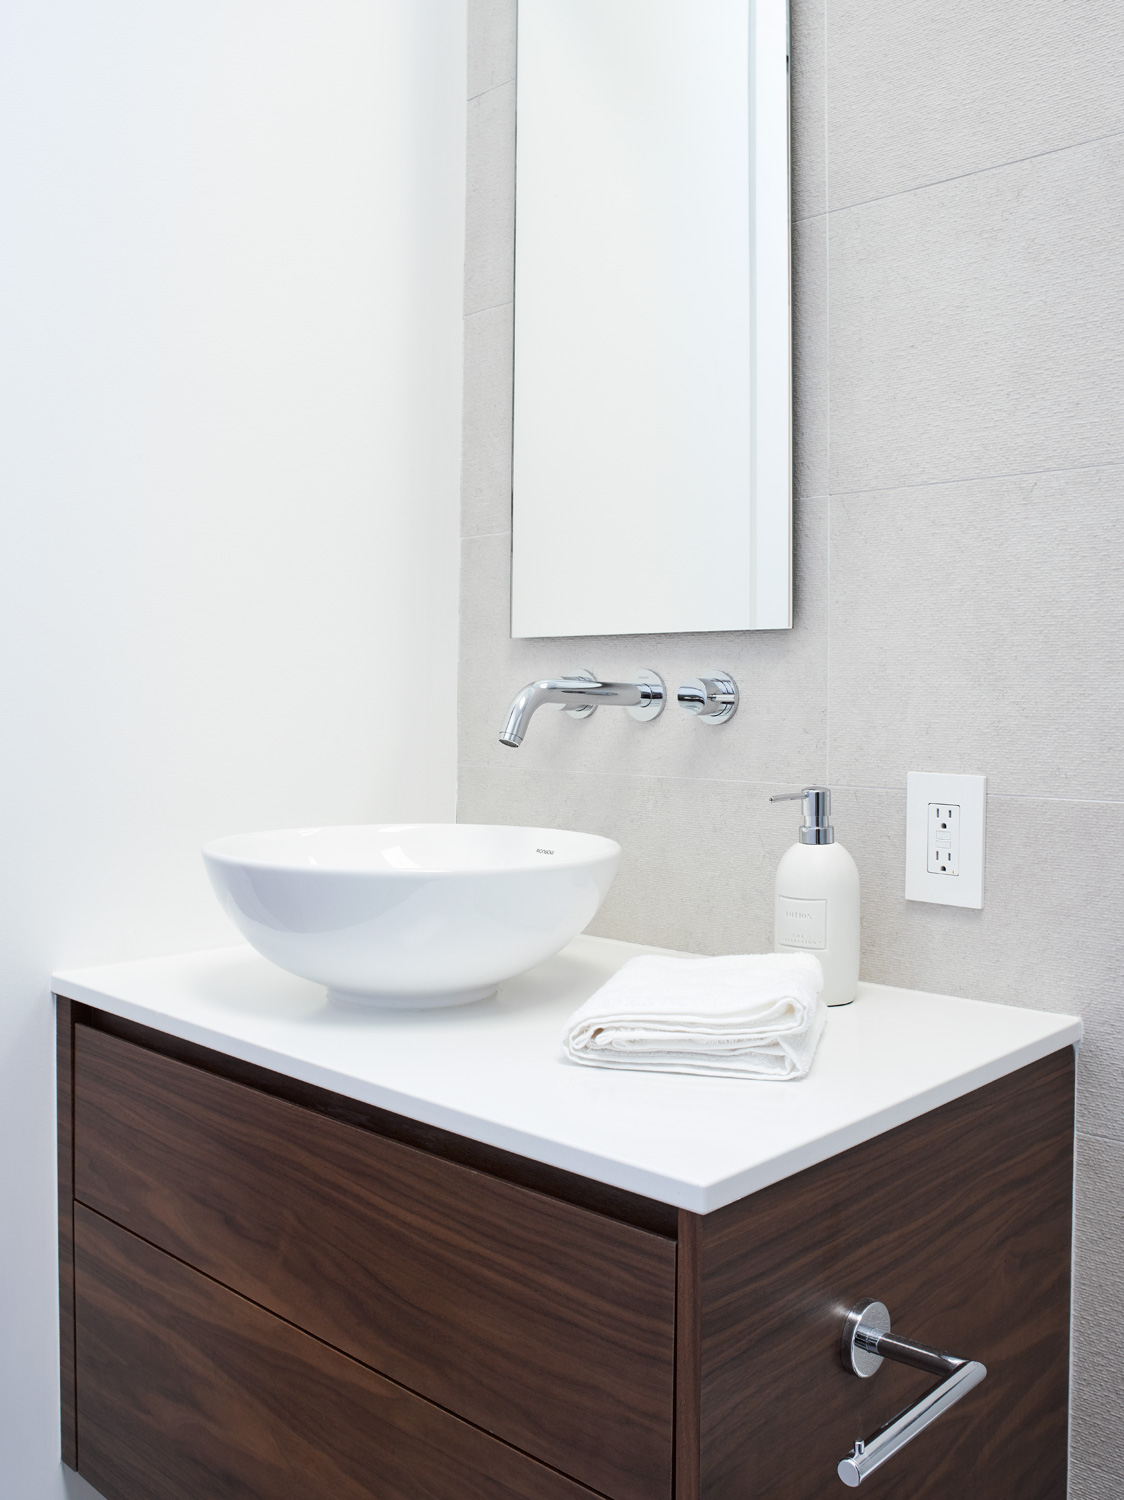 Modern Small Vanity with Vessel SInk